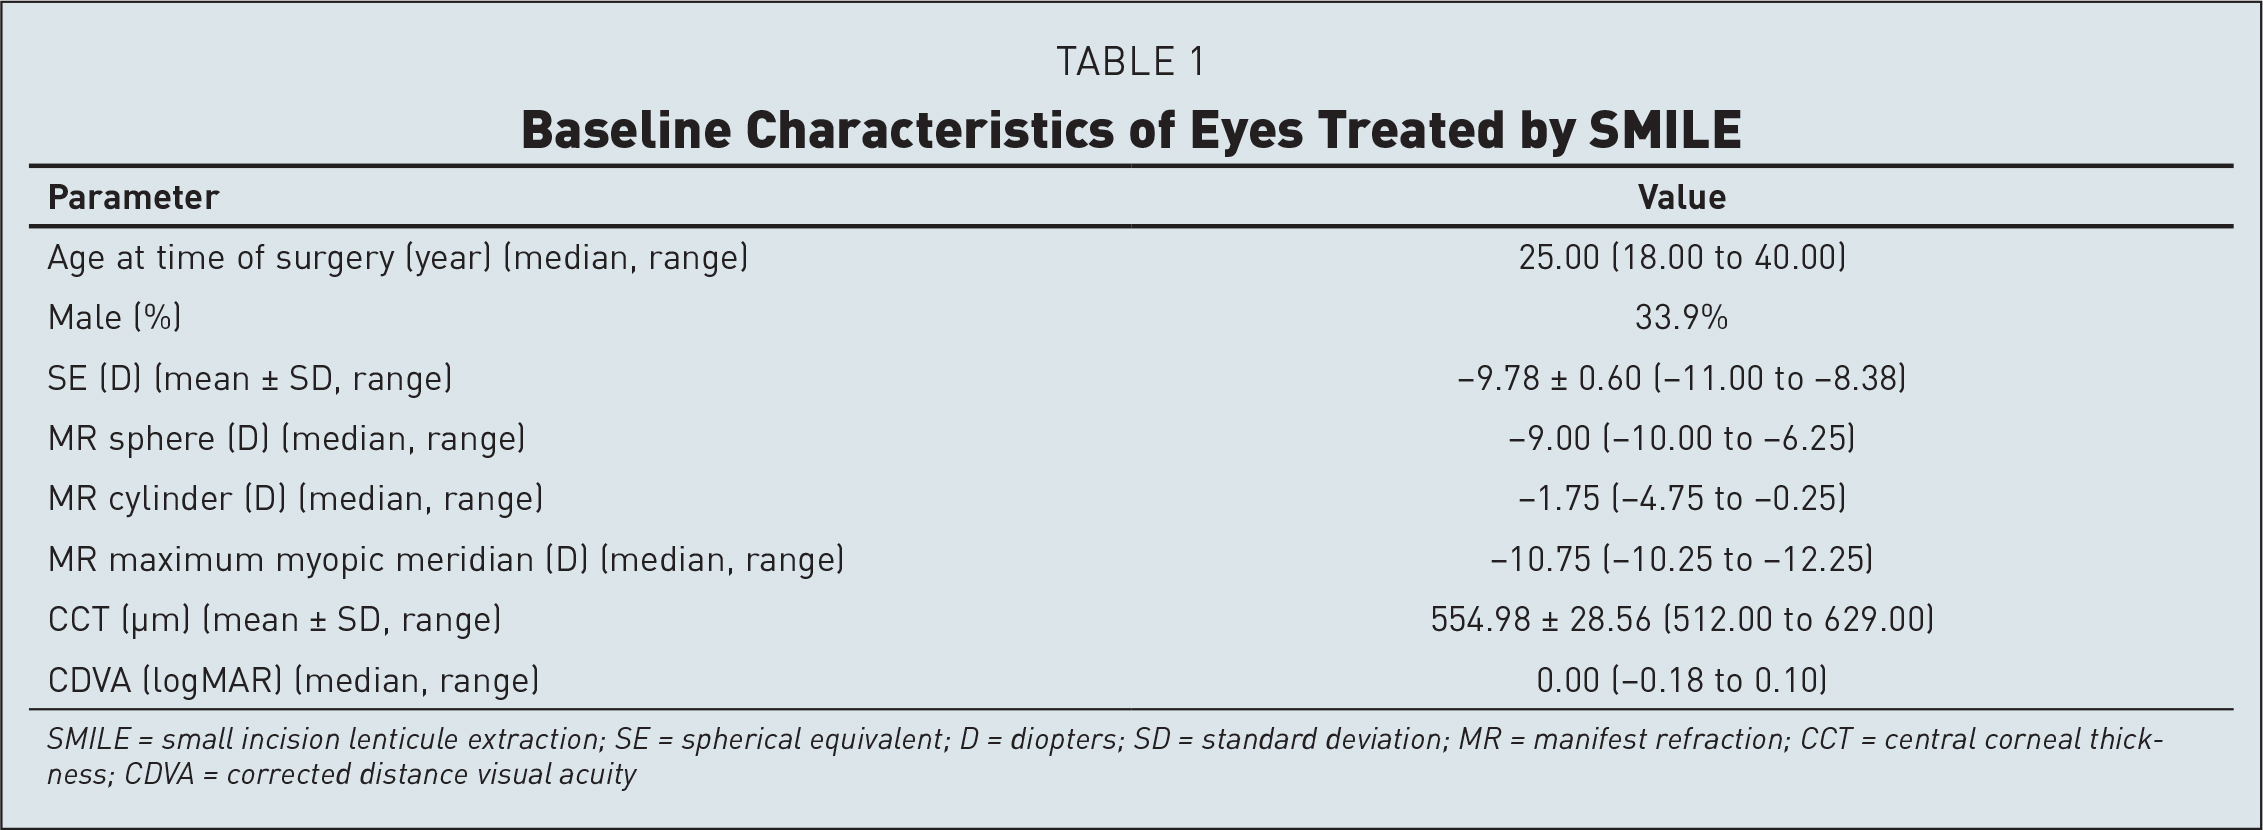 Baseline Characteristics of Eyes Treated by SMILE